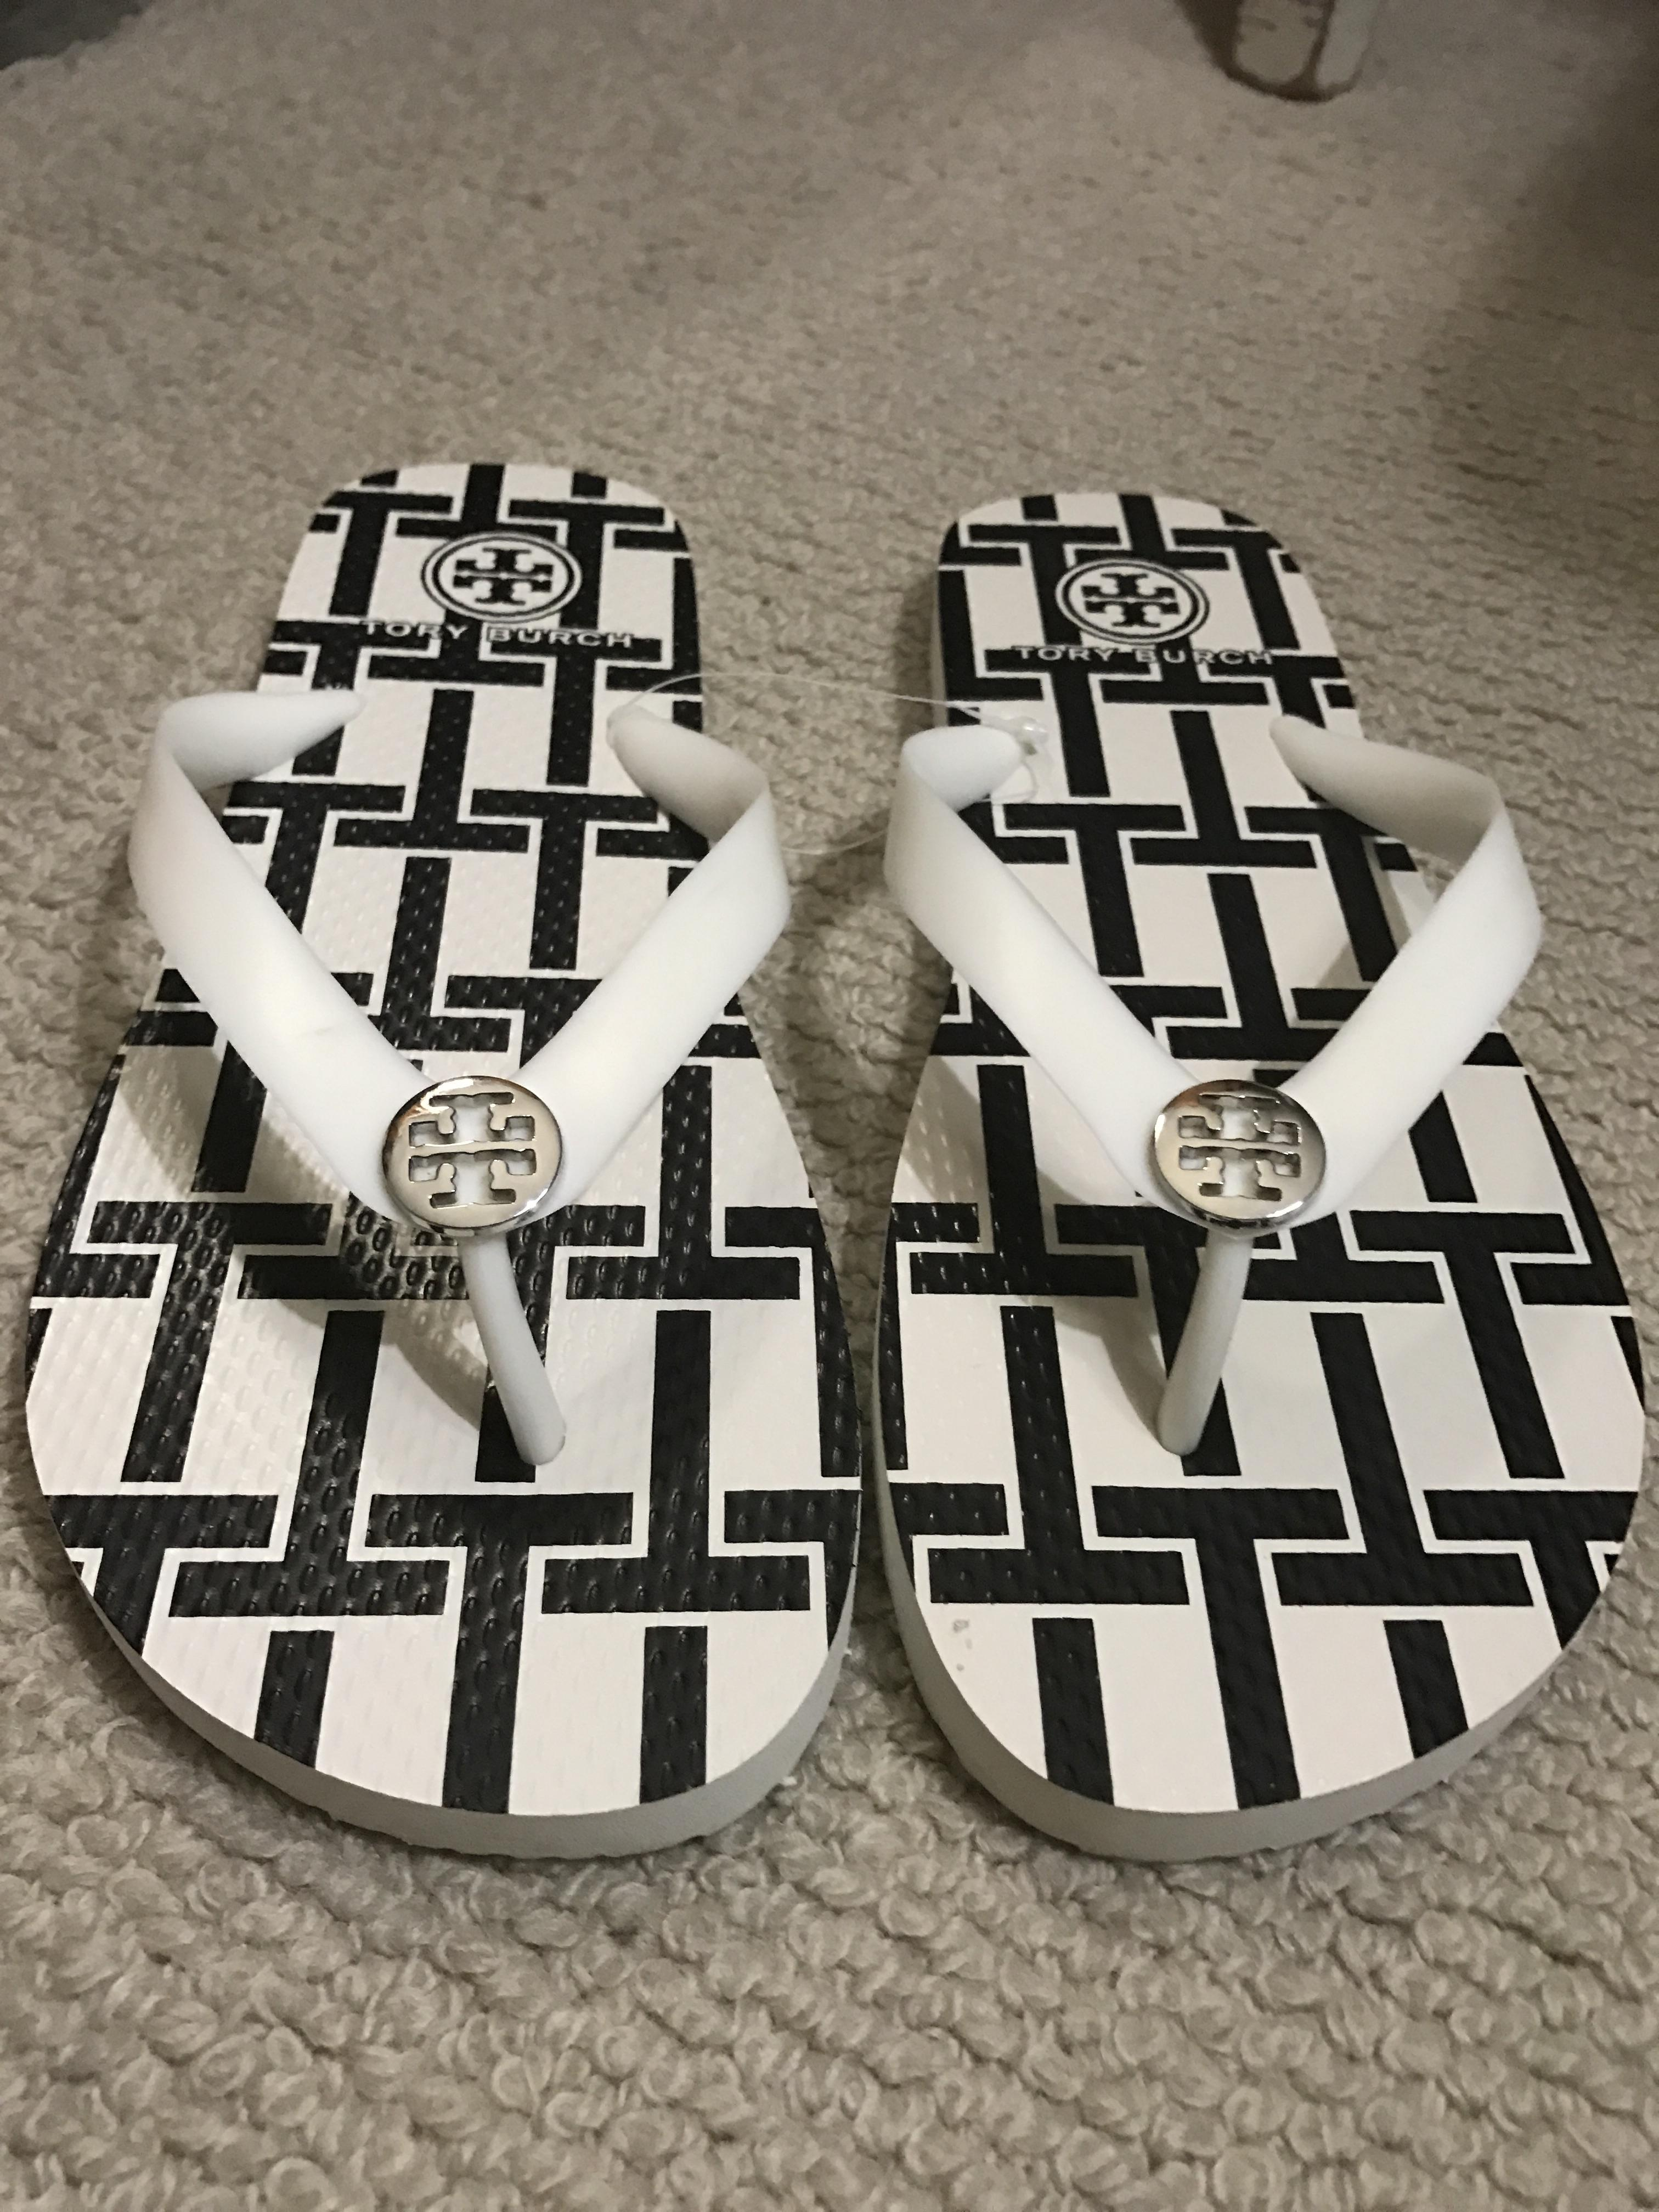 f769037d32c3 Tory Burch Black and White T Sandals Size US US US 9 Regular (M